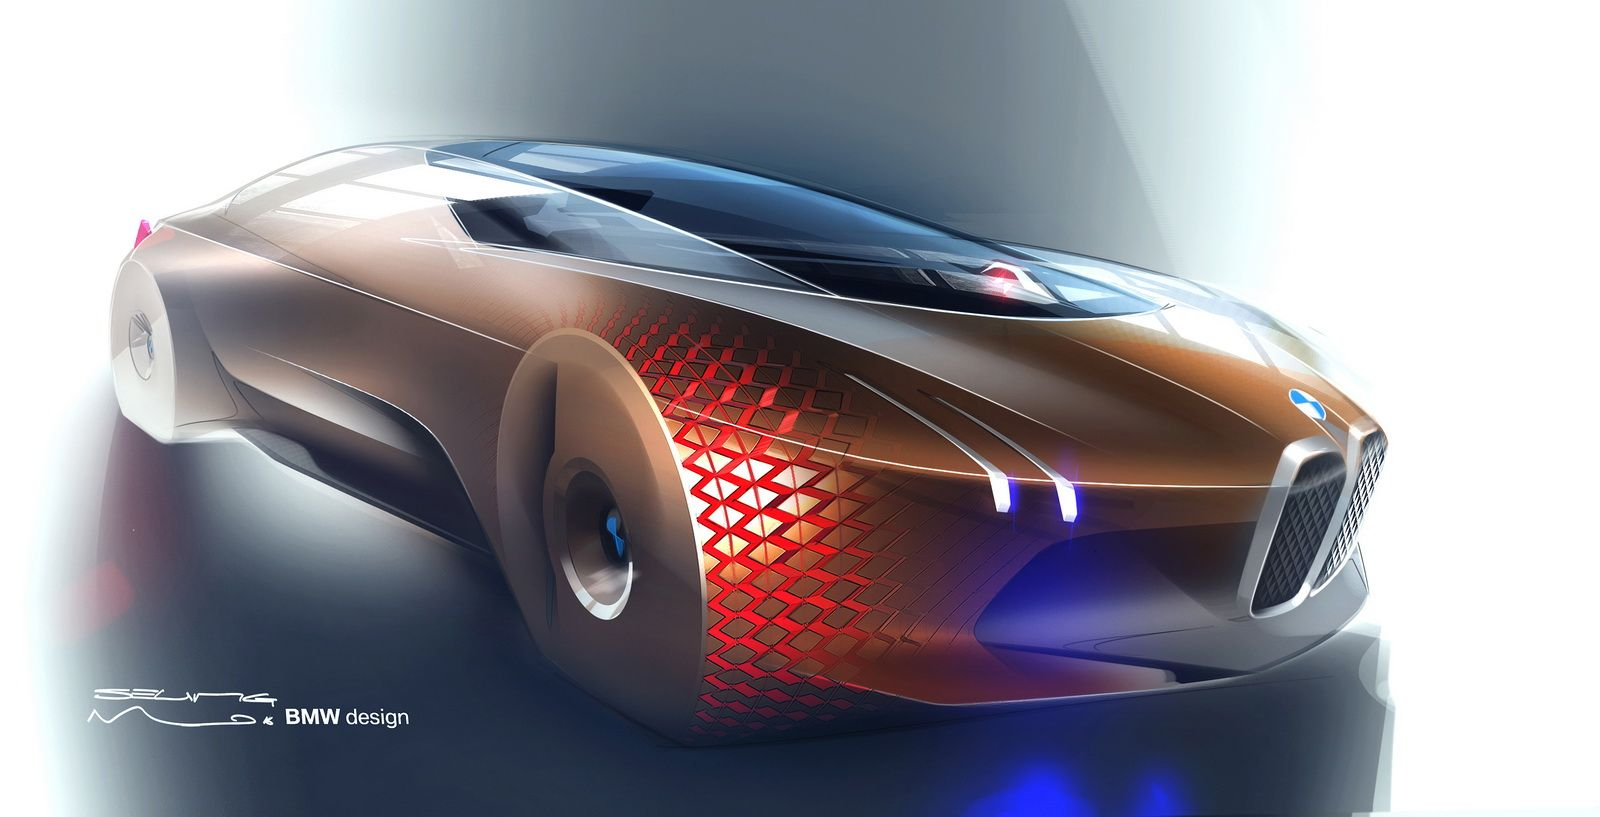 Bmw Vision Next 100 Revealed To Preview Future Technologies 108 Pics Video Carscoops Bmw Next 100 Bmw Design Concept Cars